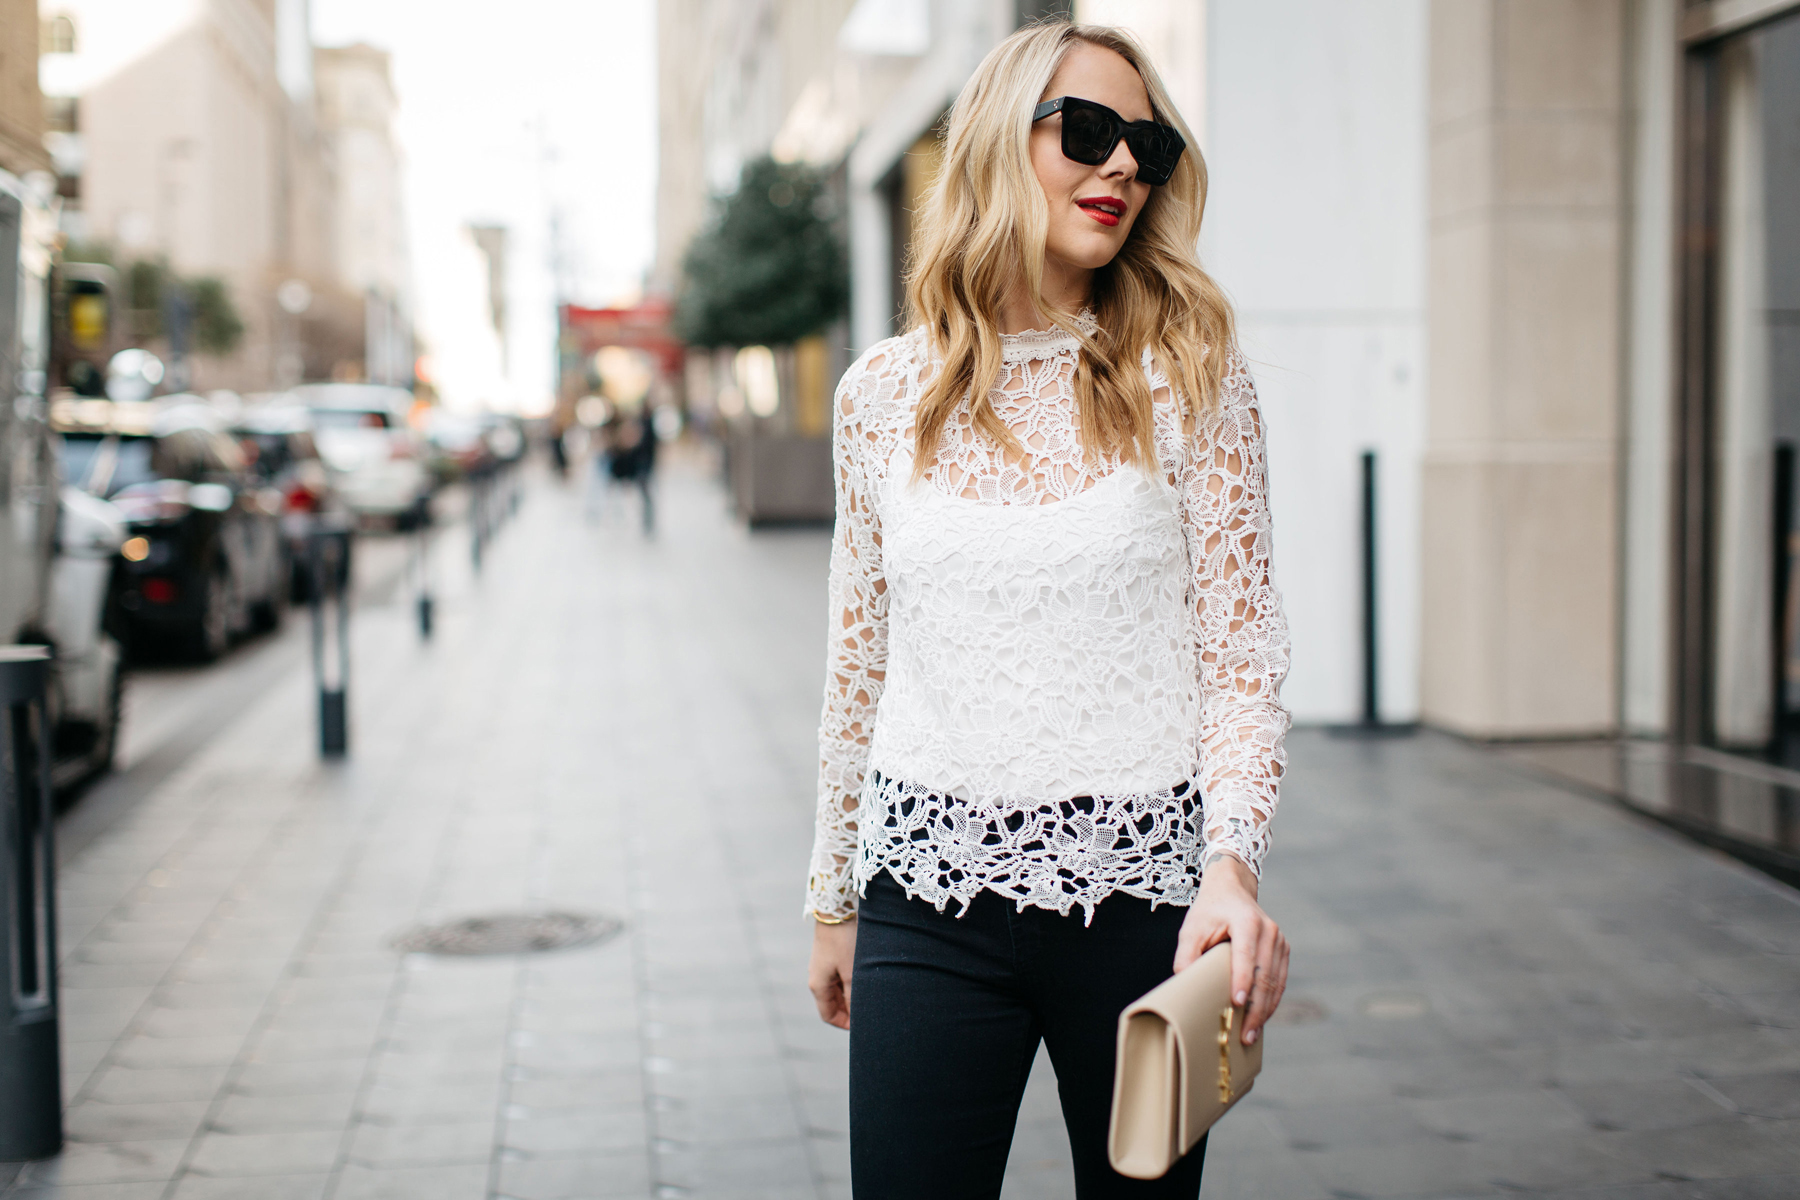 Fall Outfit, Winter Outfit, White Lace Long Sleeve Top, Black Skinny Jeans, Saint Laurent Monogram Clutch